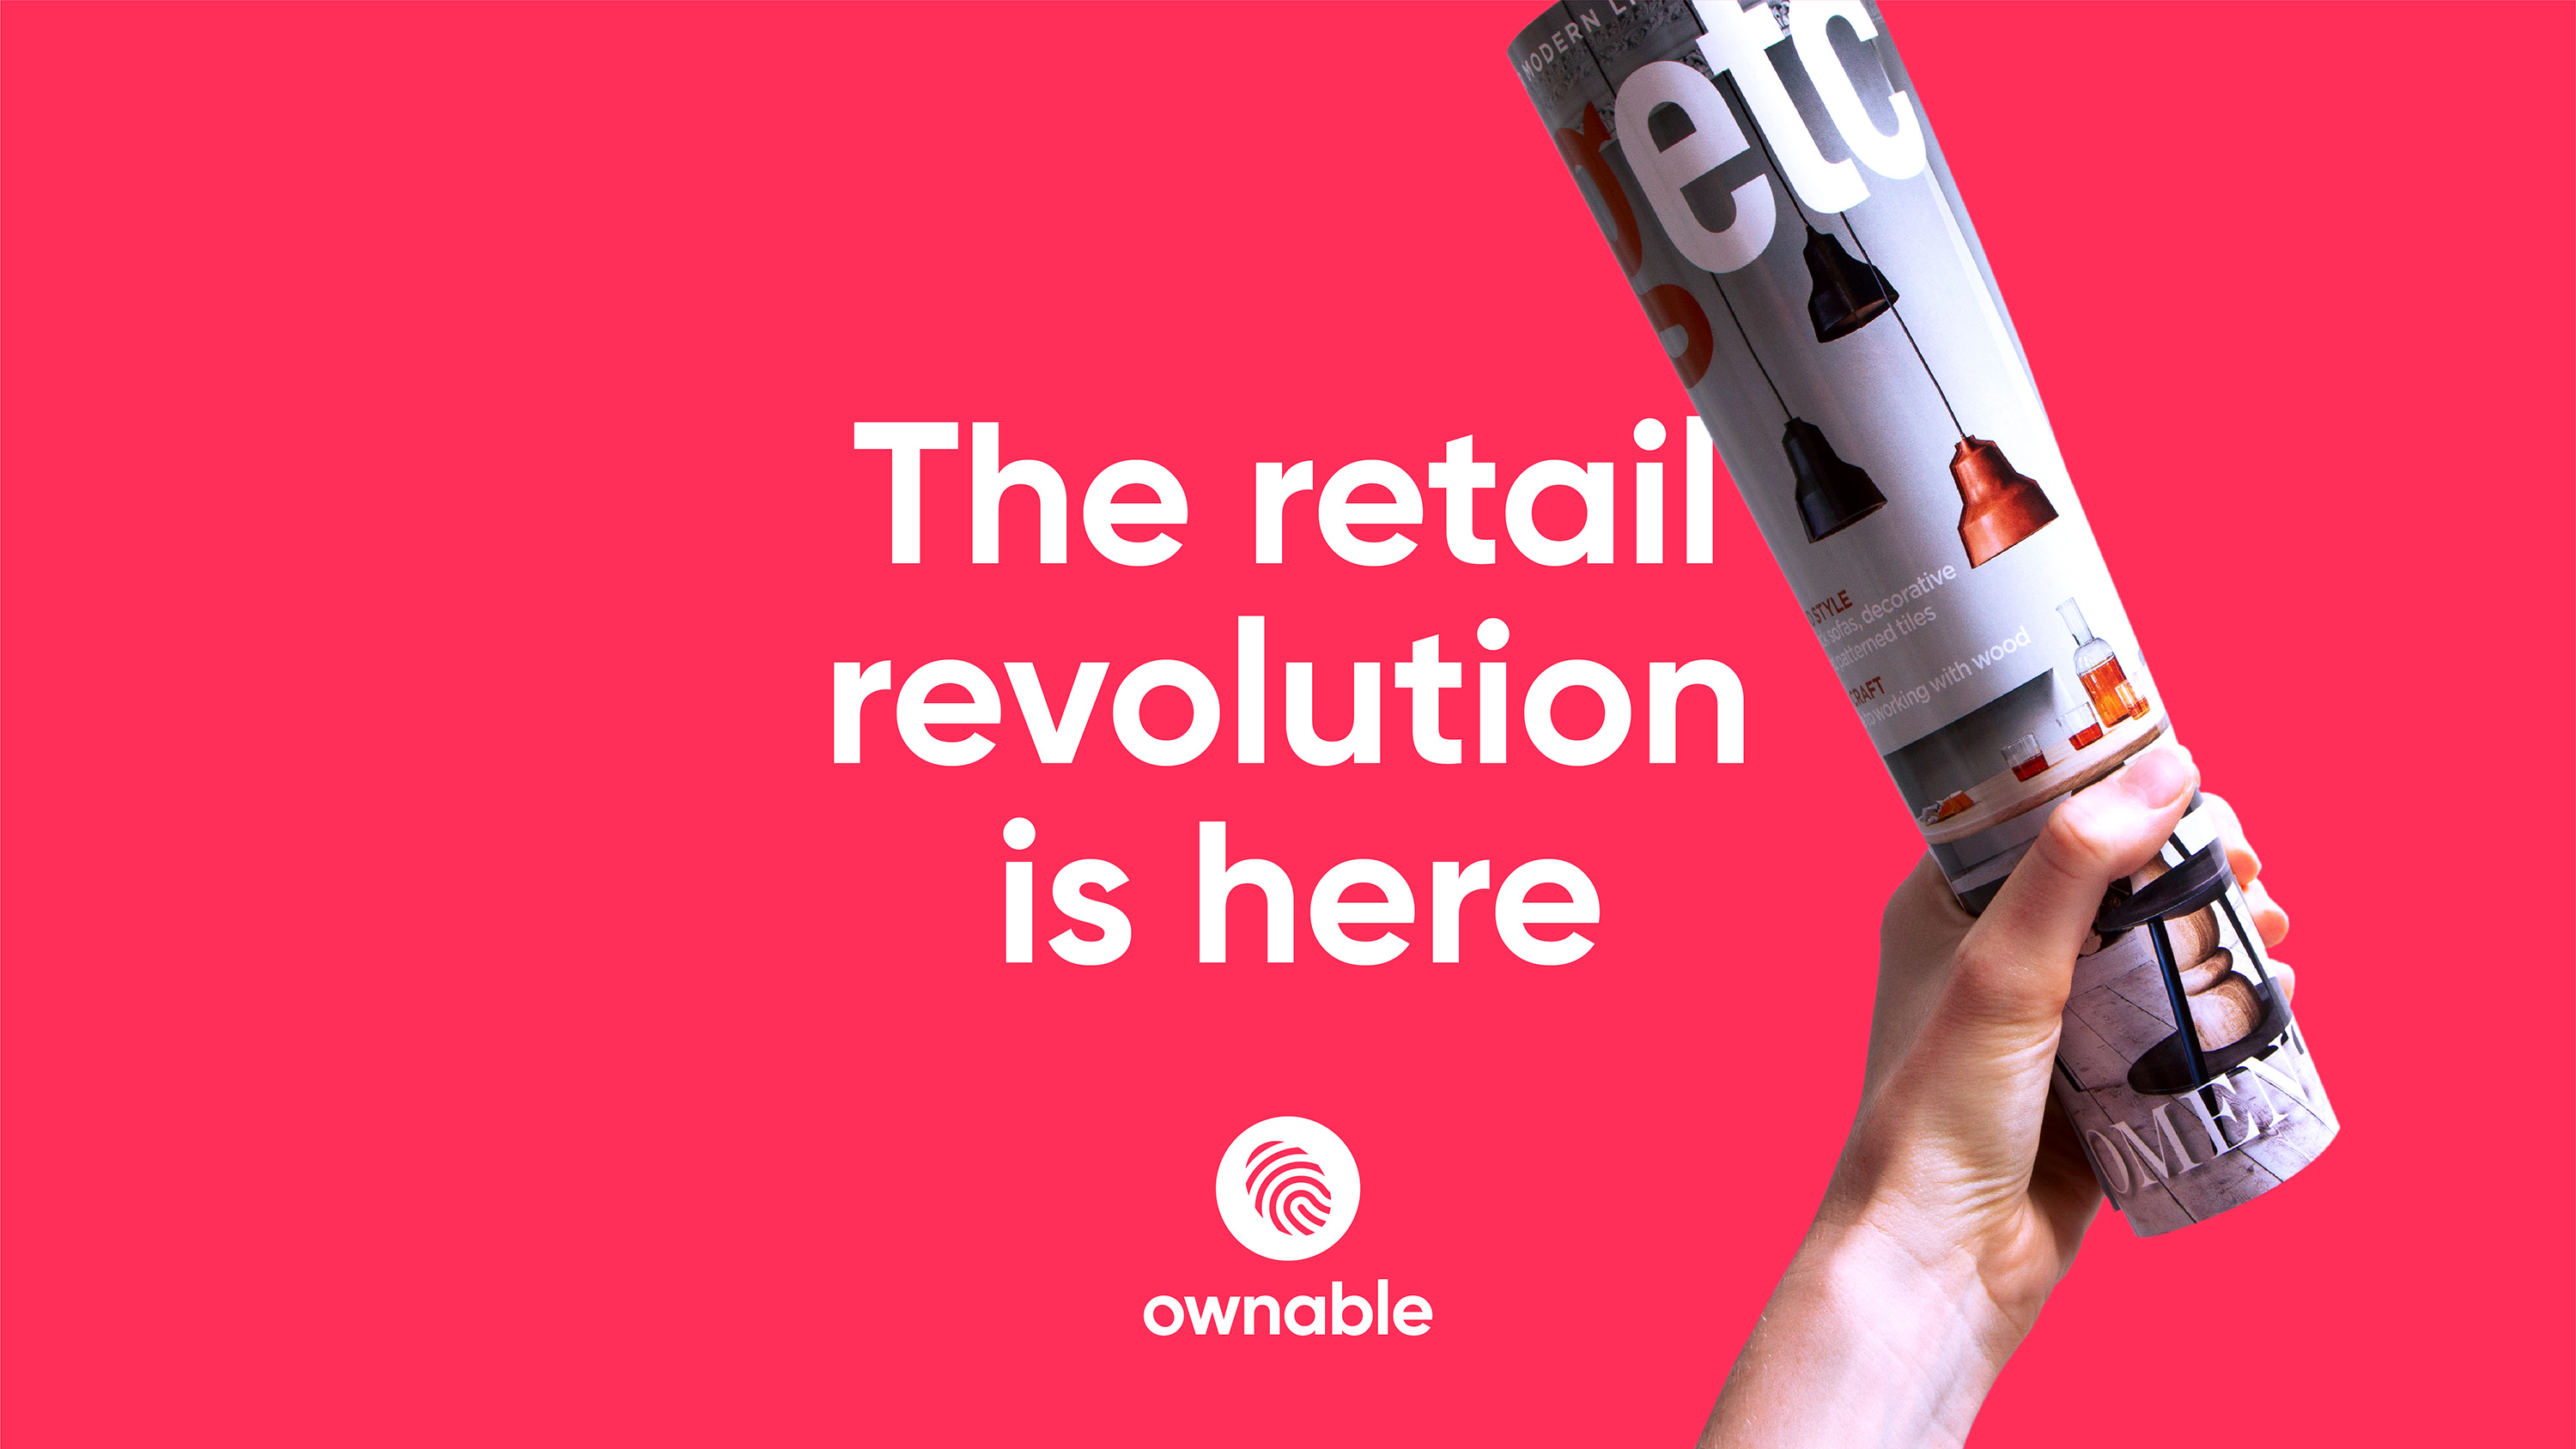 Introducing Ownable: the easy way to shop